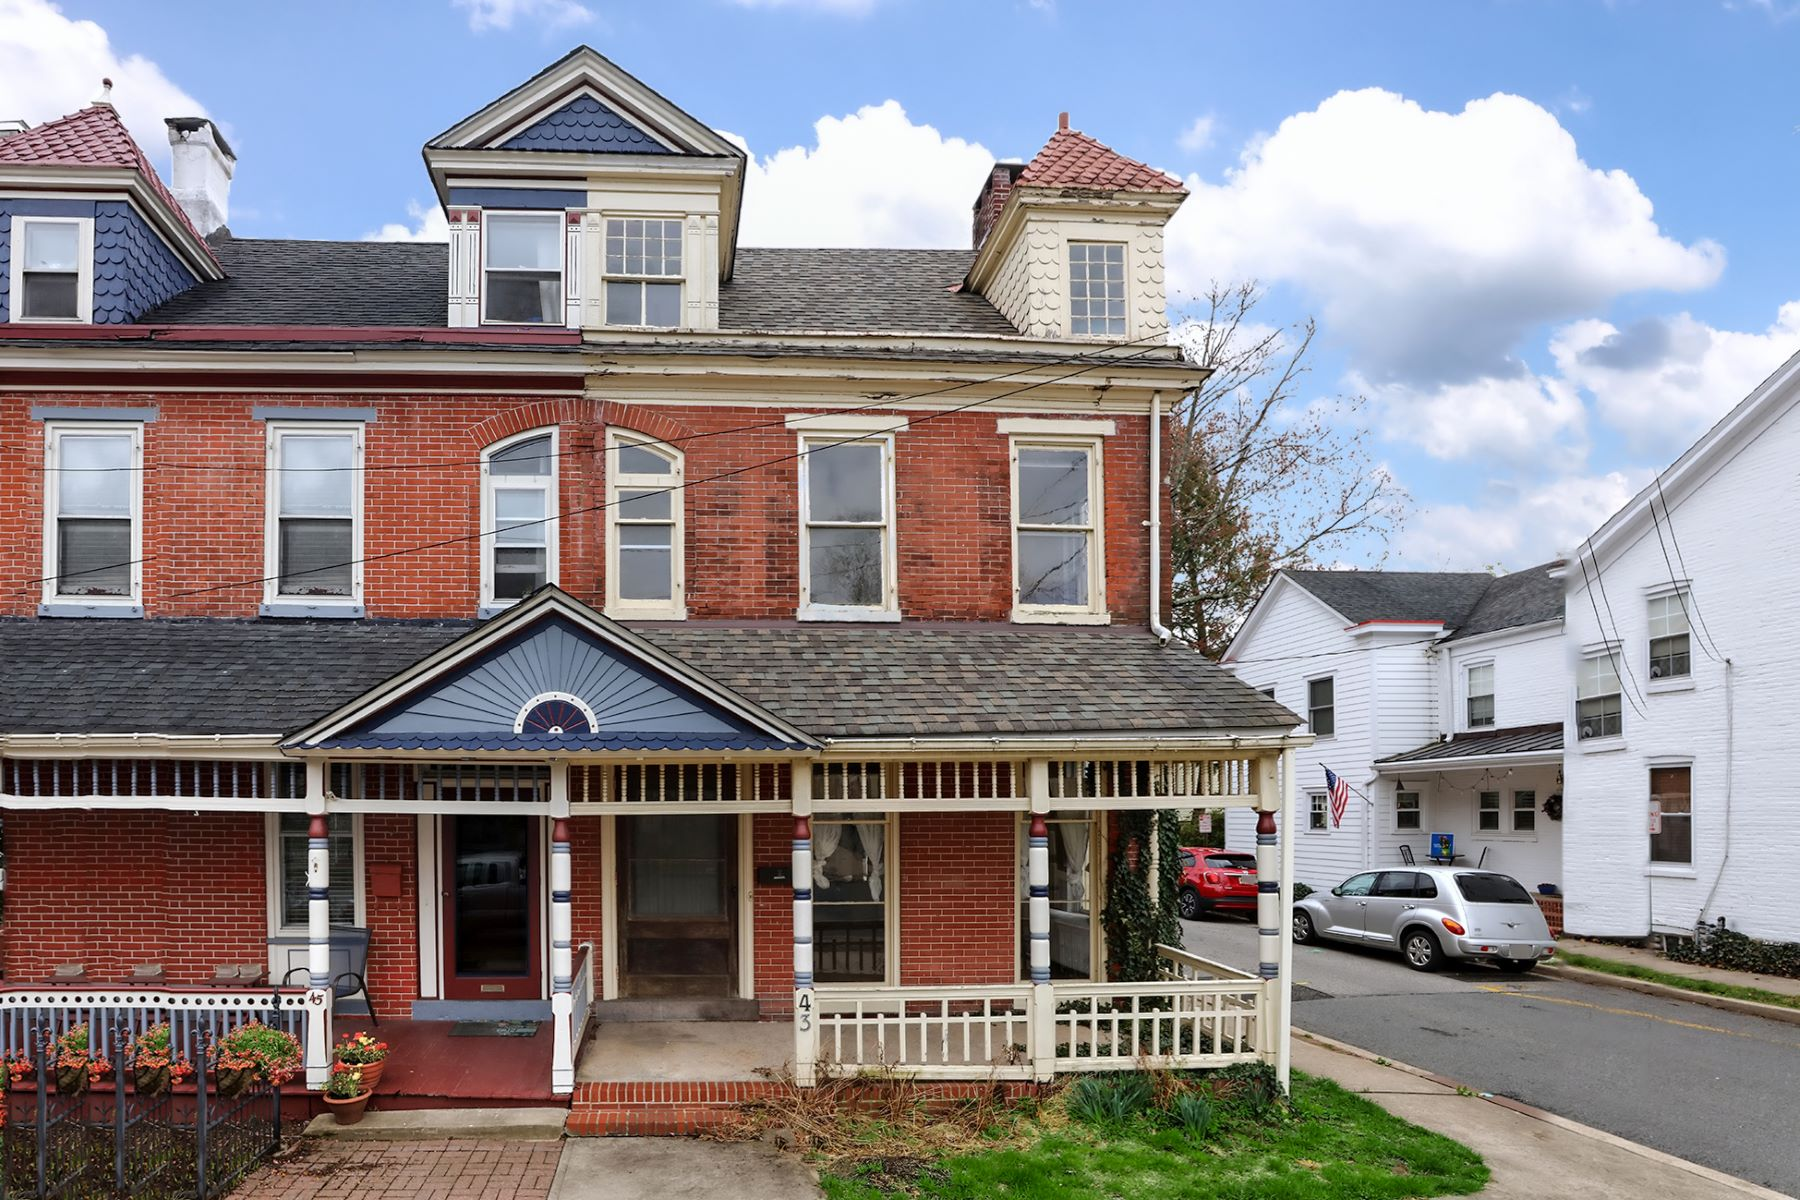 Property for Sale at Don't Wait On This Rare Lambertville Opportunity! 43 Delaware Avenue, Lambertville, New Jersey 08530 United States